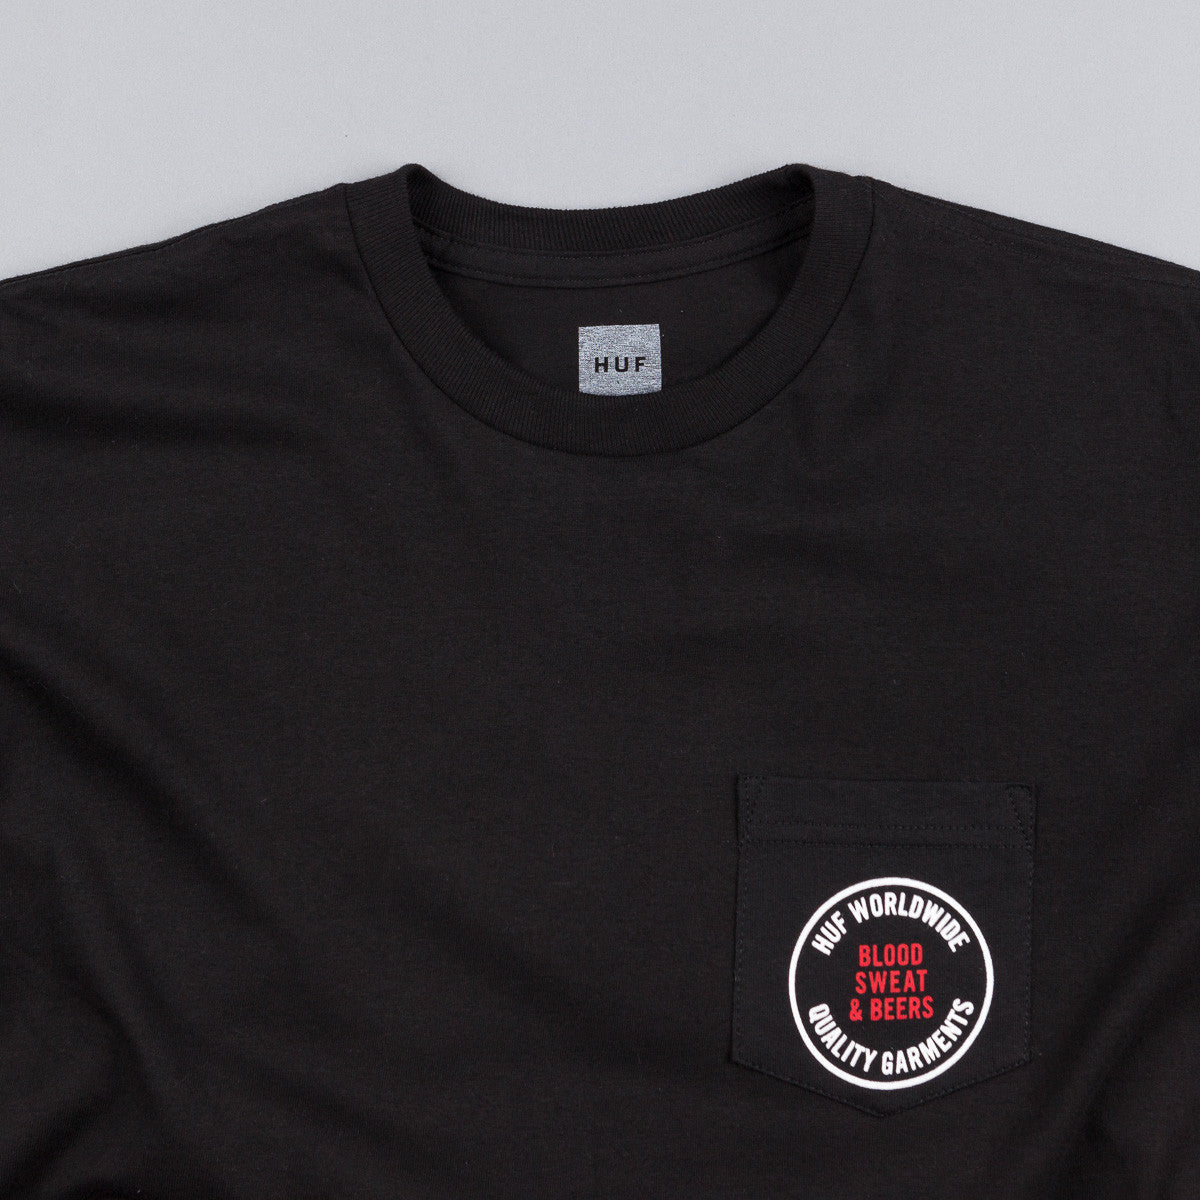 HUF Blood Sweat Beers Pocket T-Shirt - Black